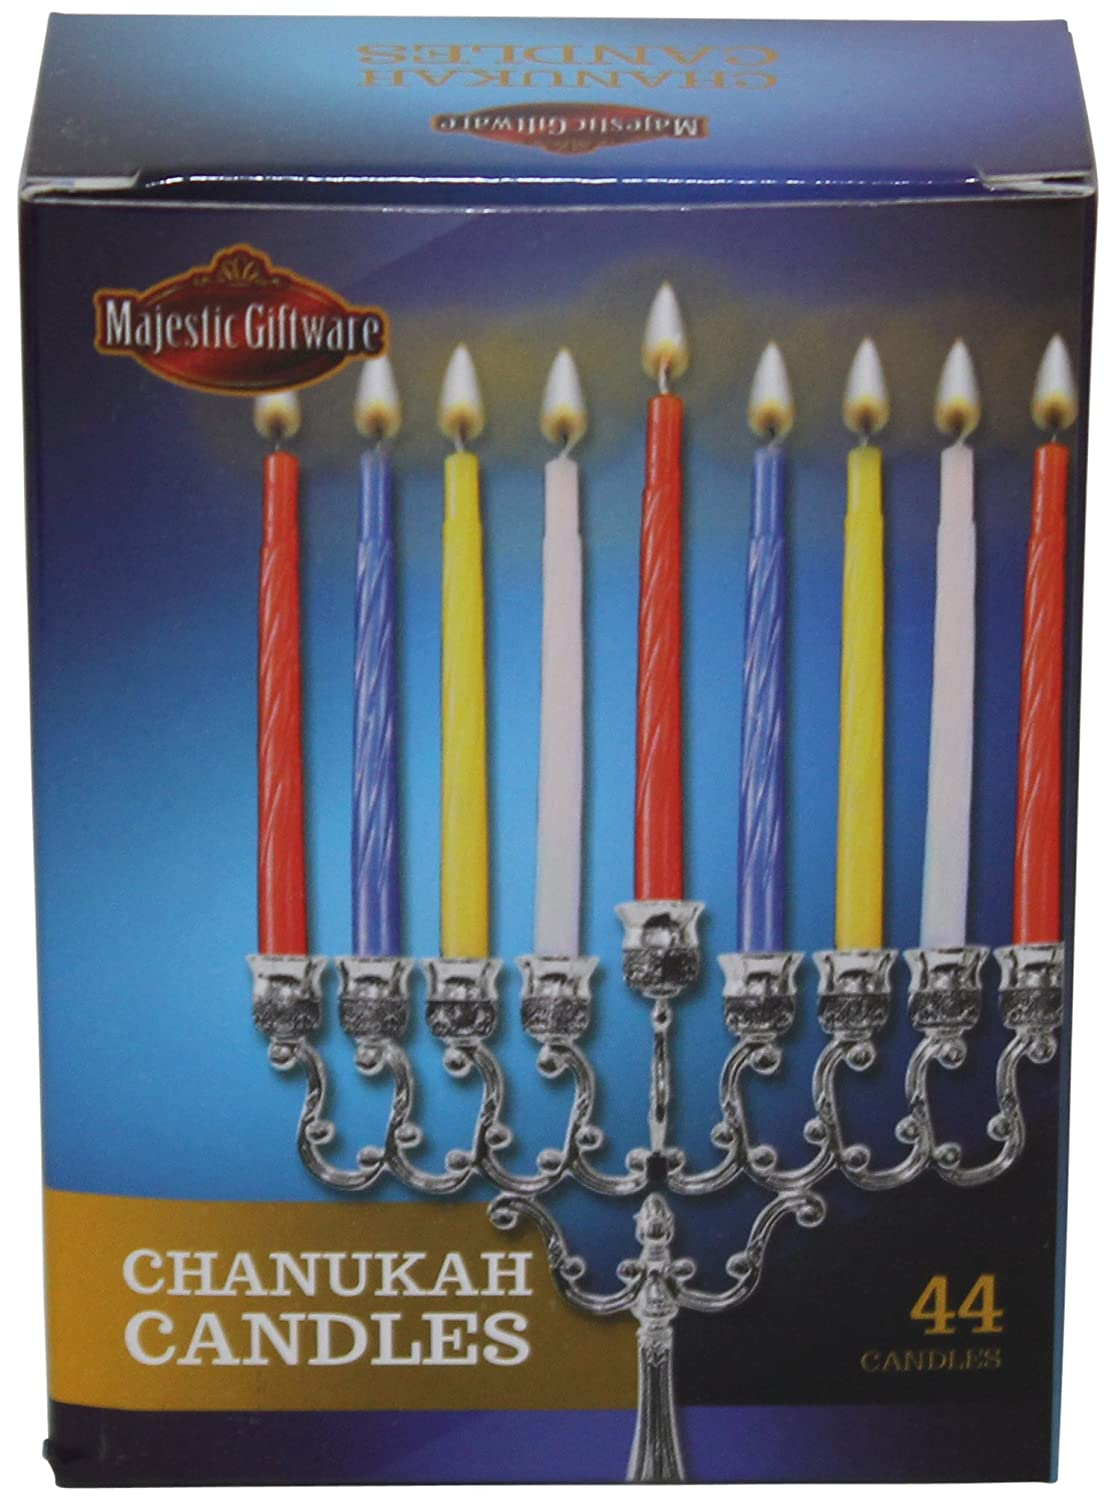 Majestic Giftware CH-C 4 44 Count Chanukah Candles Majestic Giftware Inc.